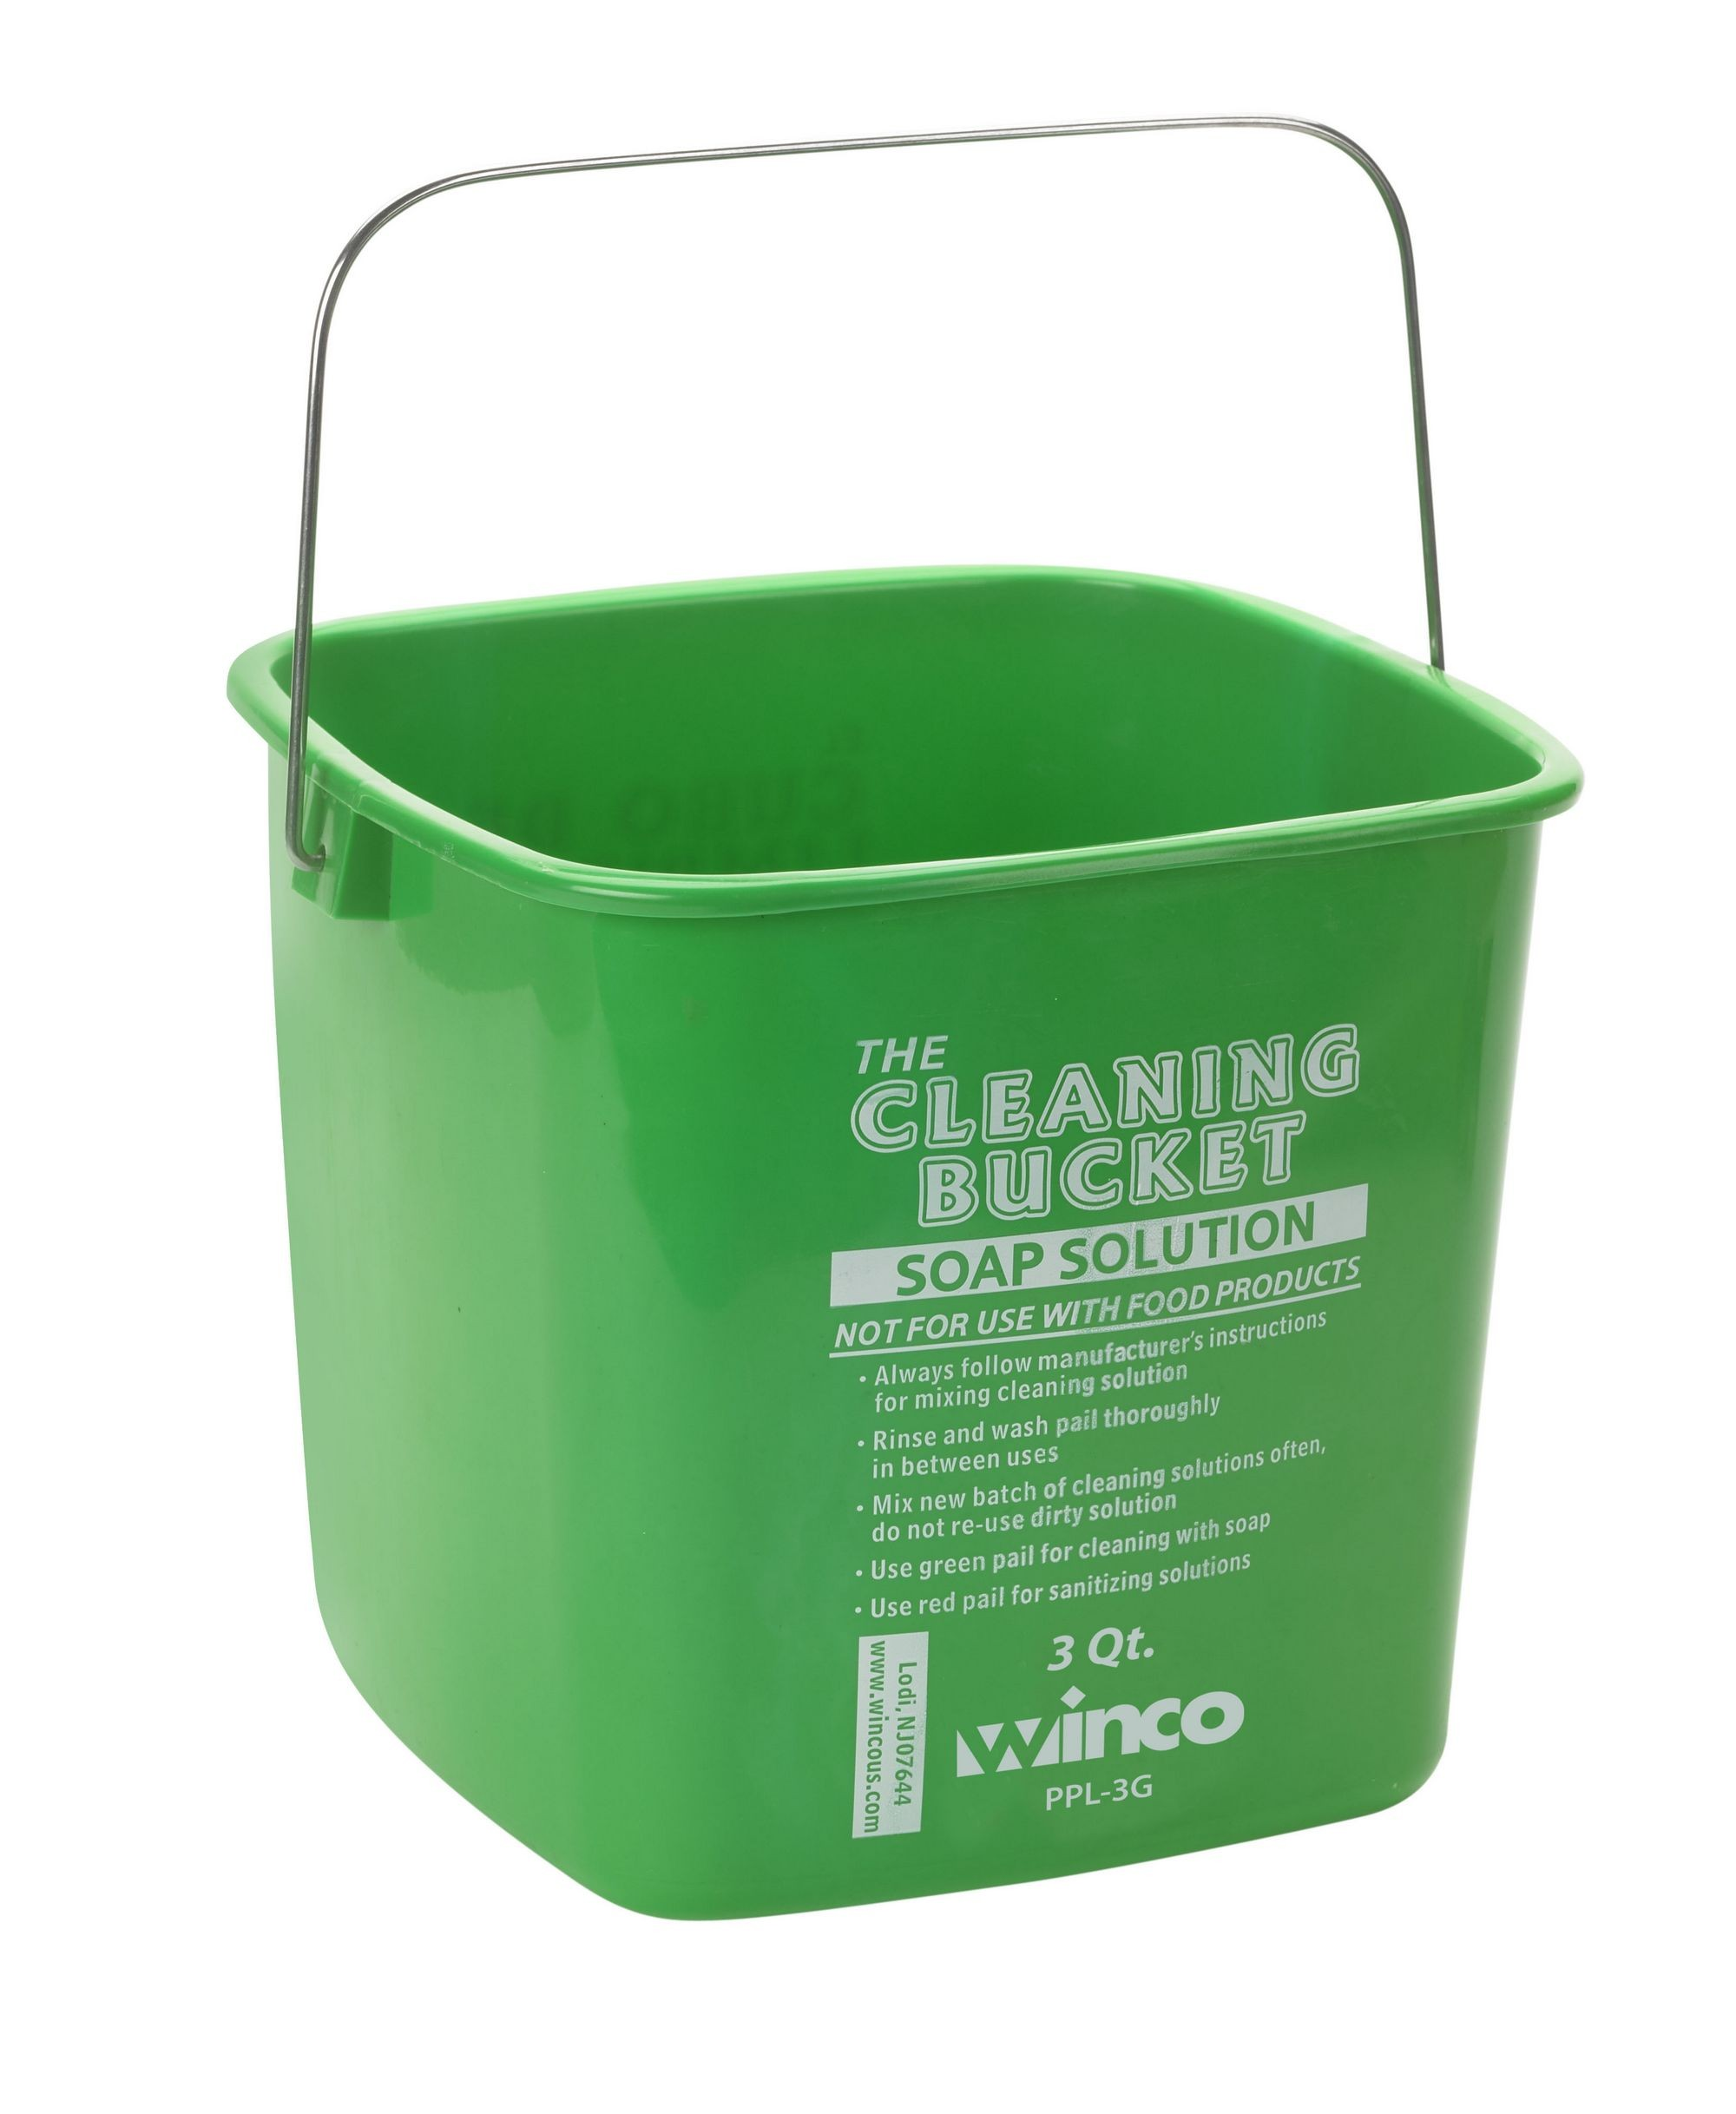 Winco PPL-3G Cleaning Bucket 3 Qt. Green Soap Solution